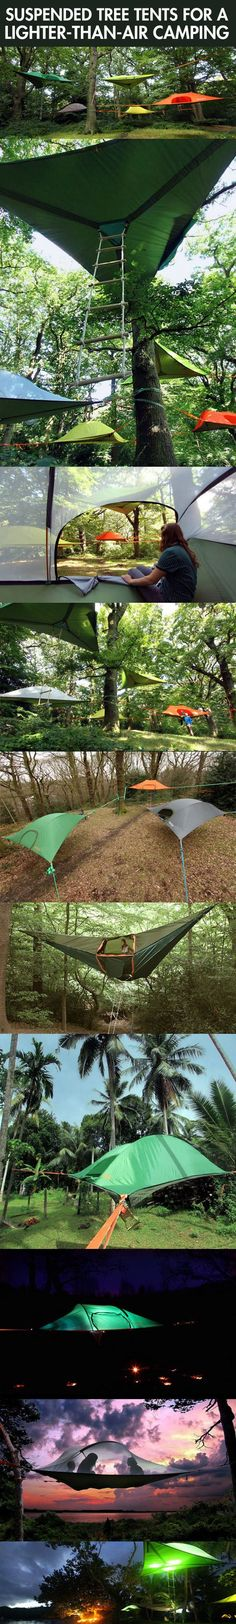 Suspended tree tents!